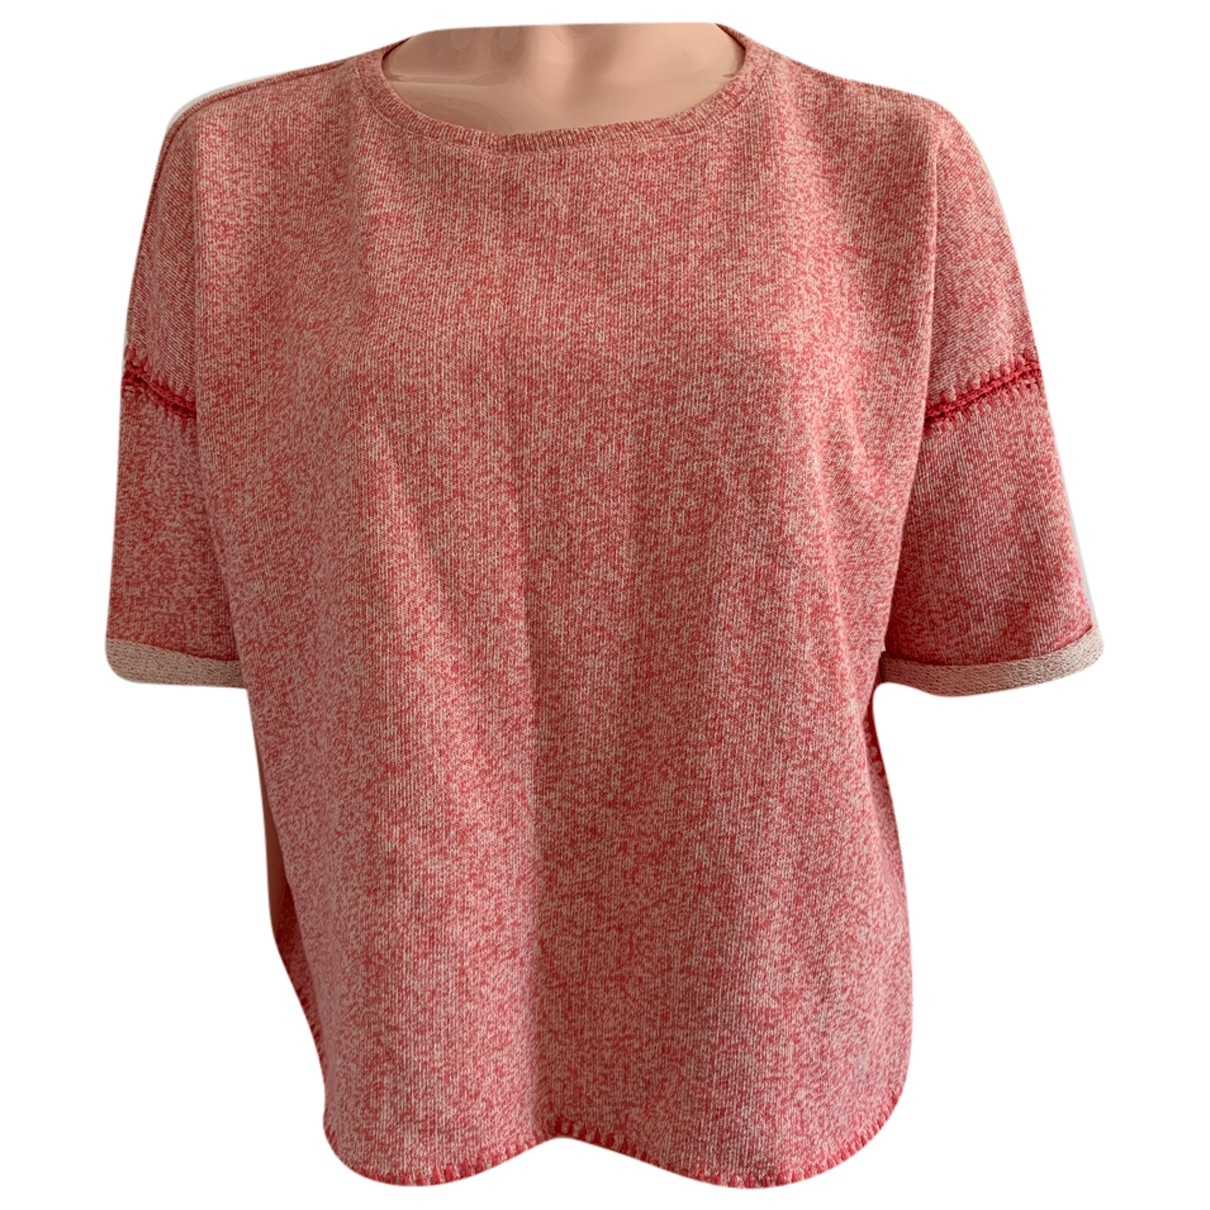 Maje \N Red Cotton  top for Women 1 0-5